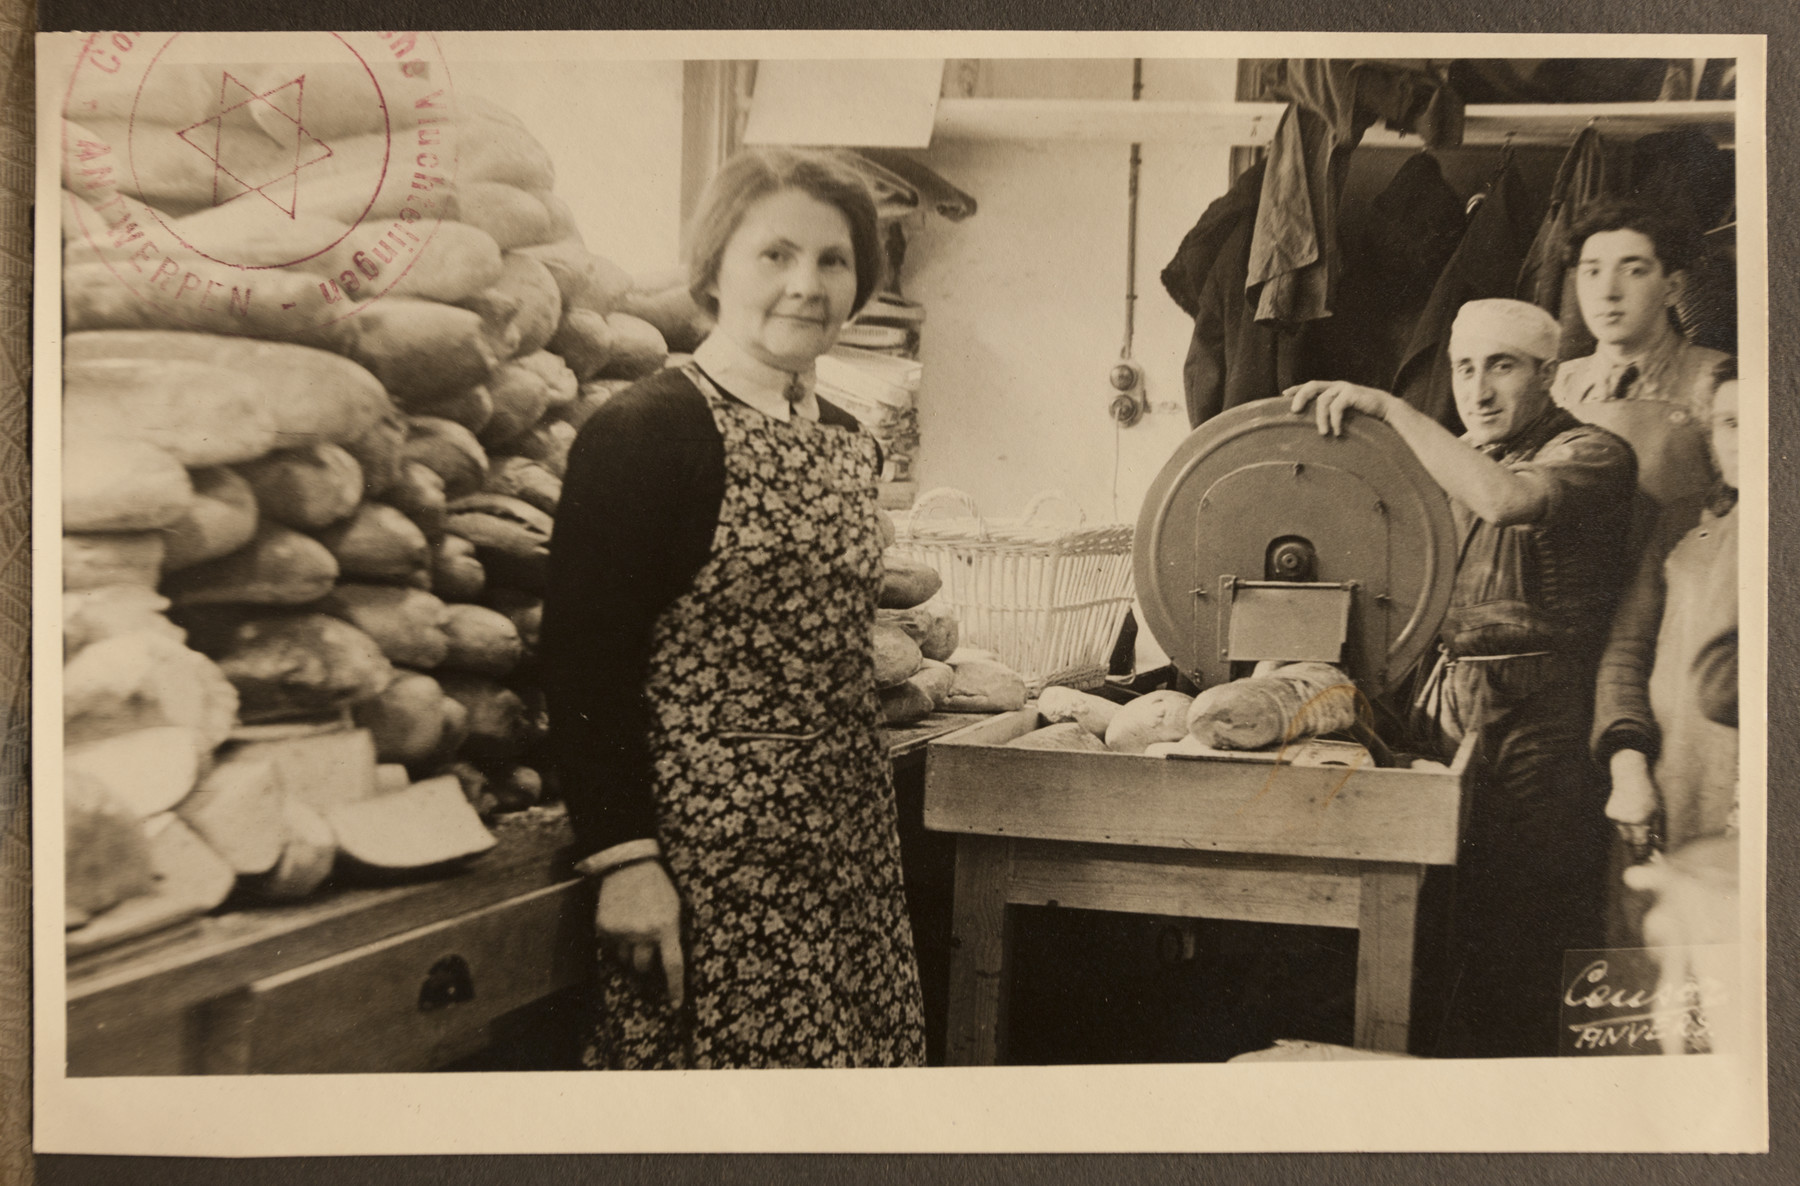 Kitchen workers of the Jewish Refugee Aid Committee of Antwerp slice large loaves of bread.